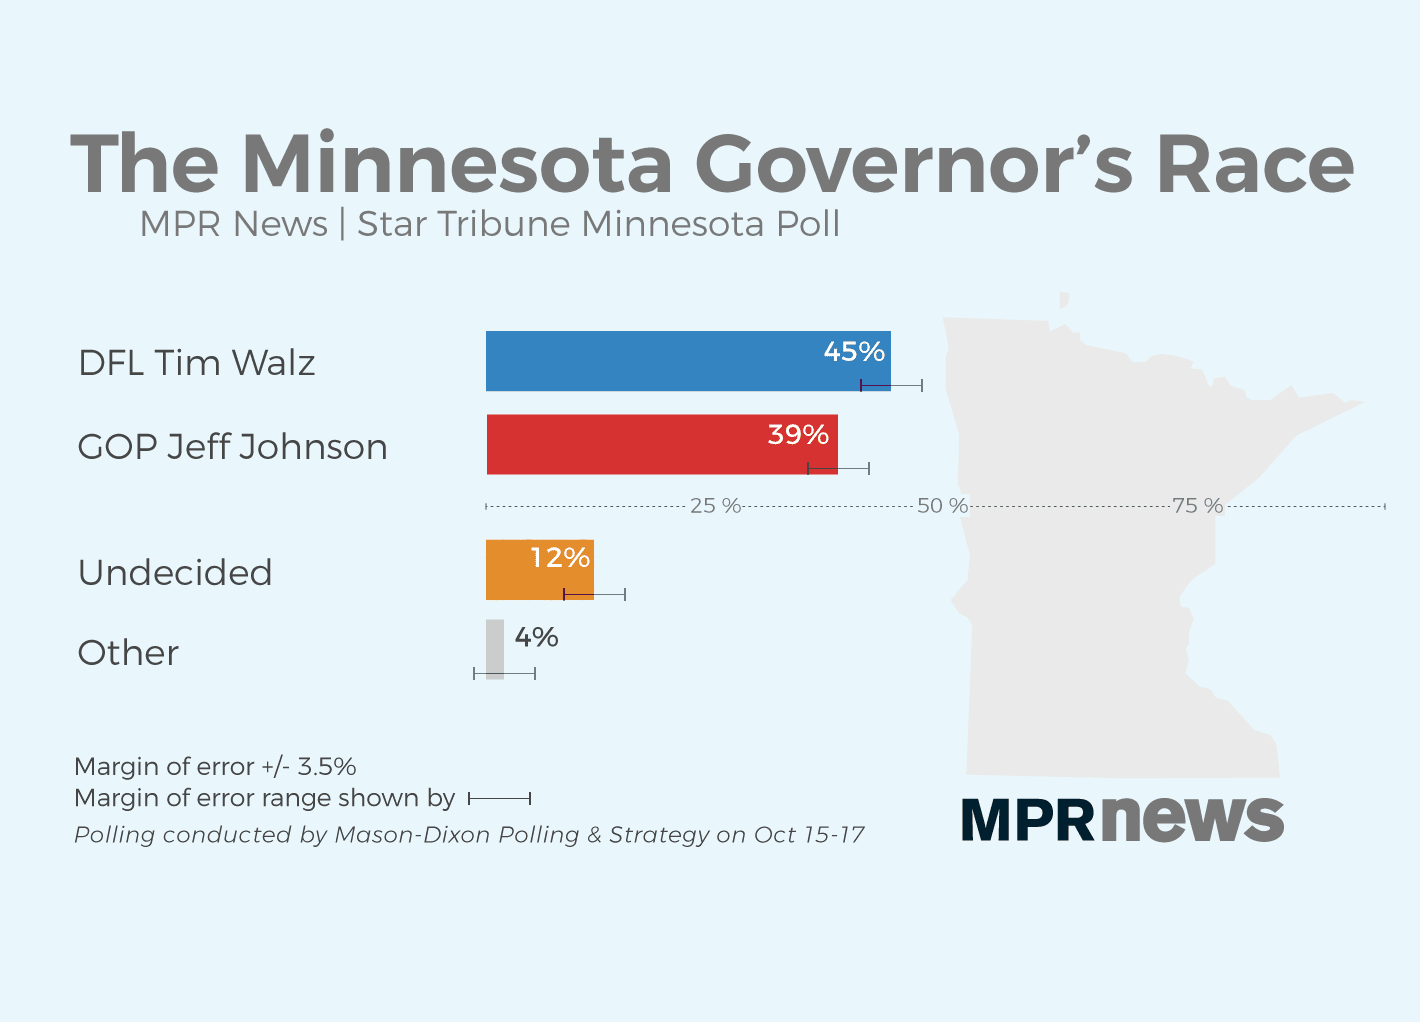 Walz maintains a lead over Johnson